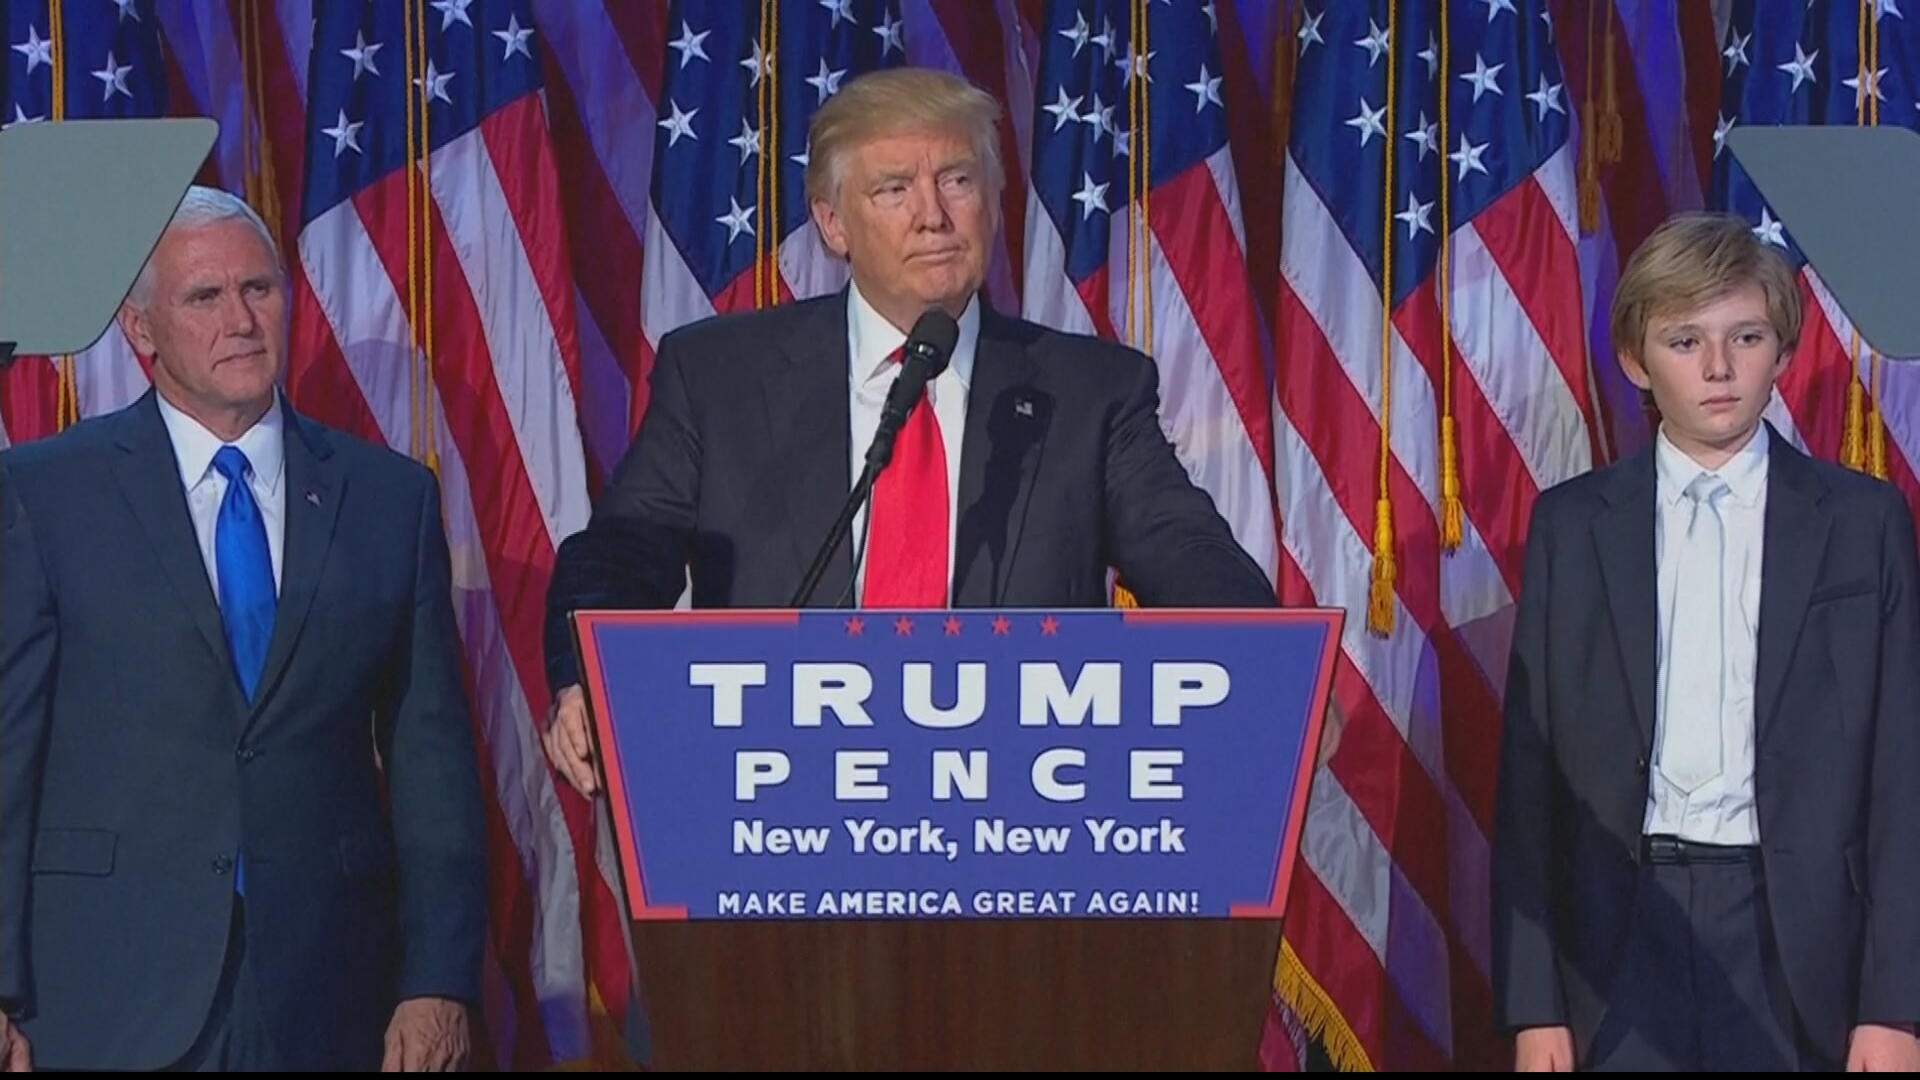 President-elect Donald Trump gives his victory speech on November 9, 2016.